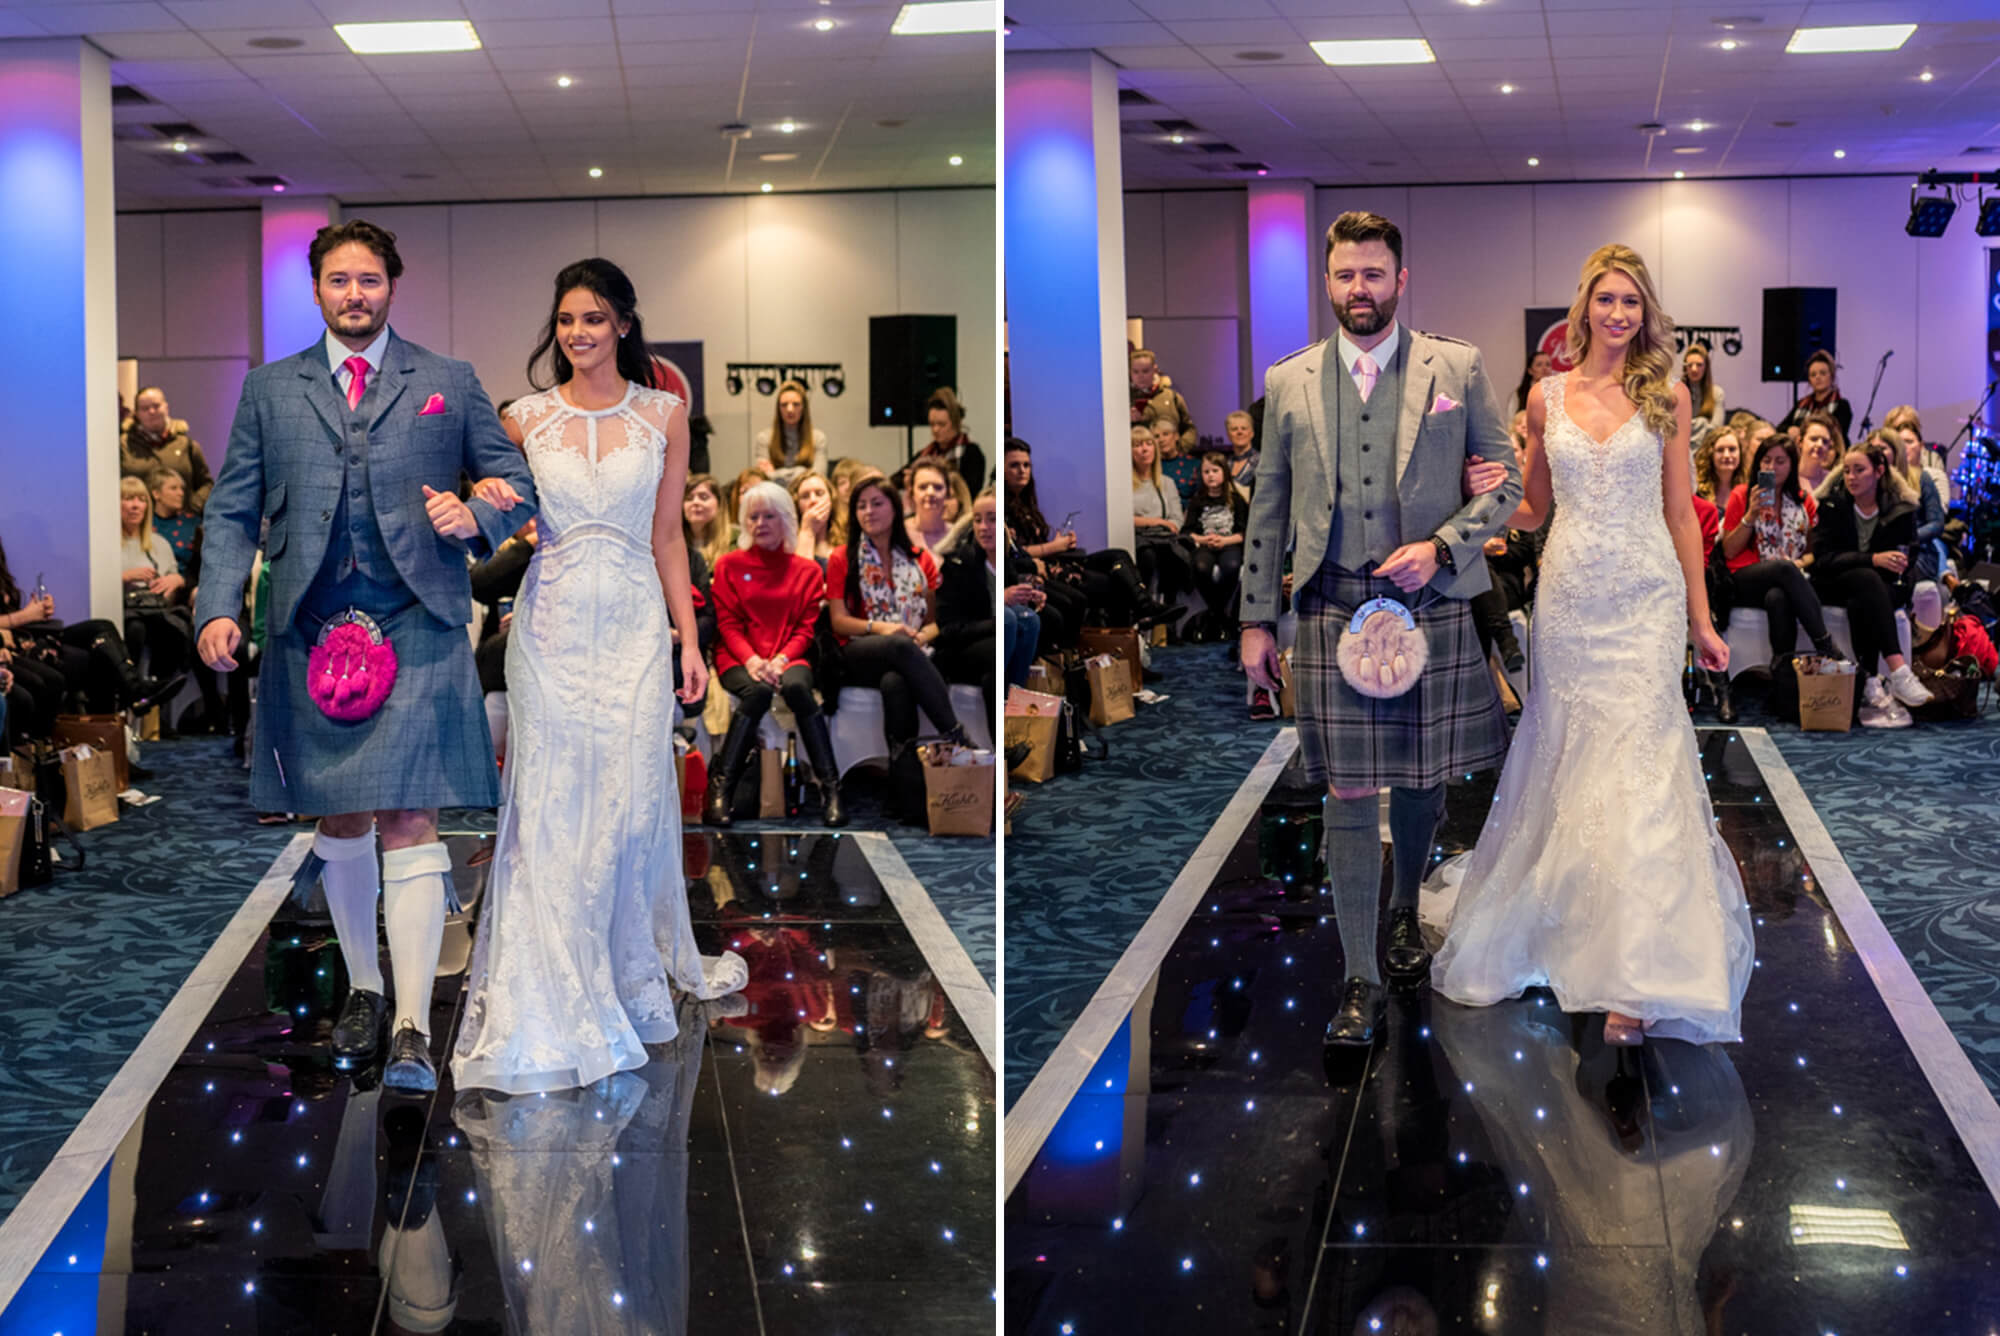 Bride and groom walking down catwalk